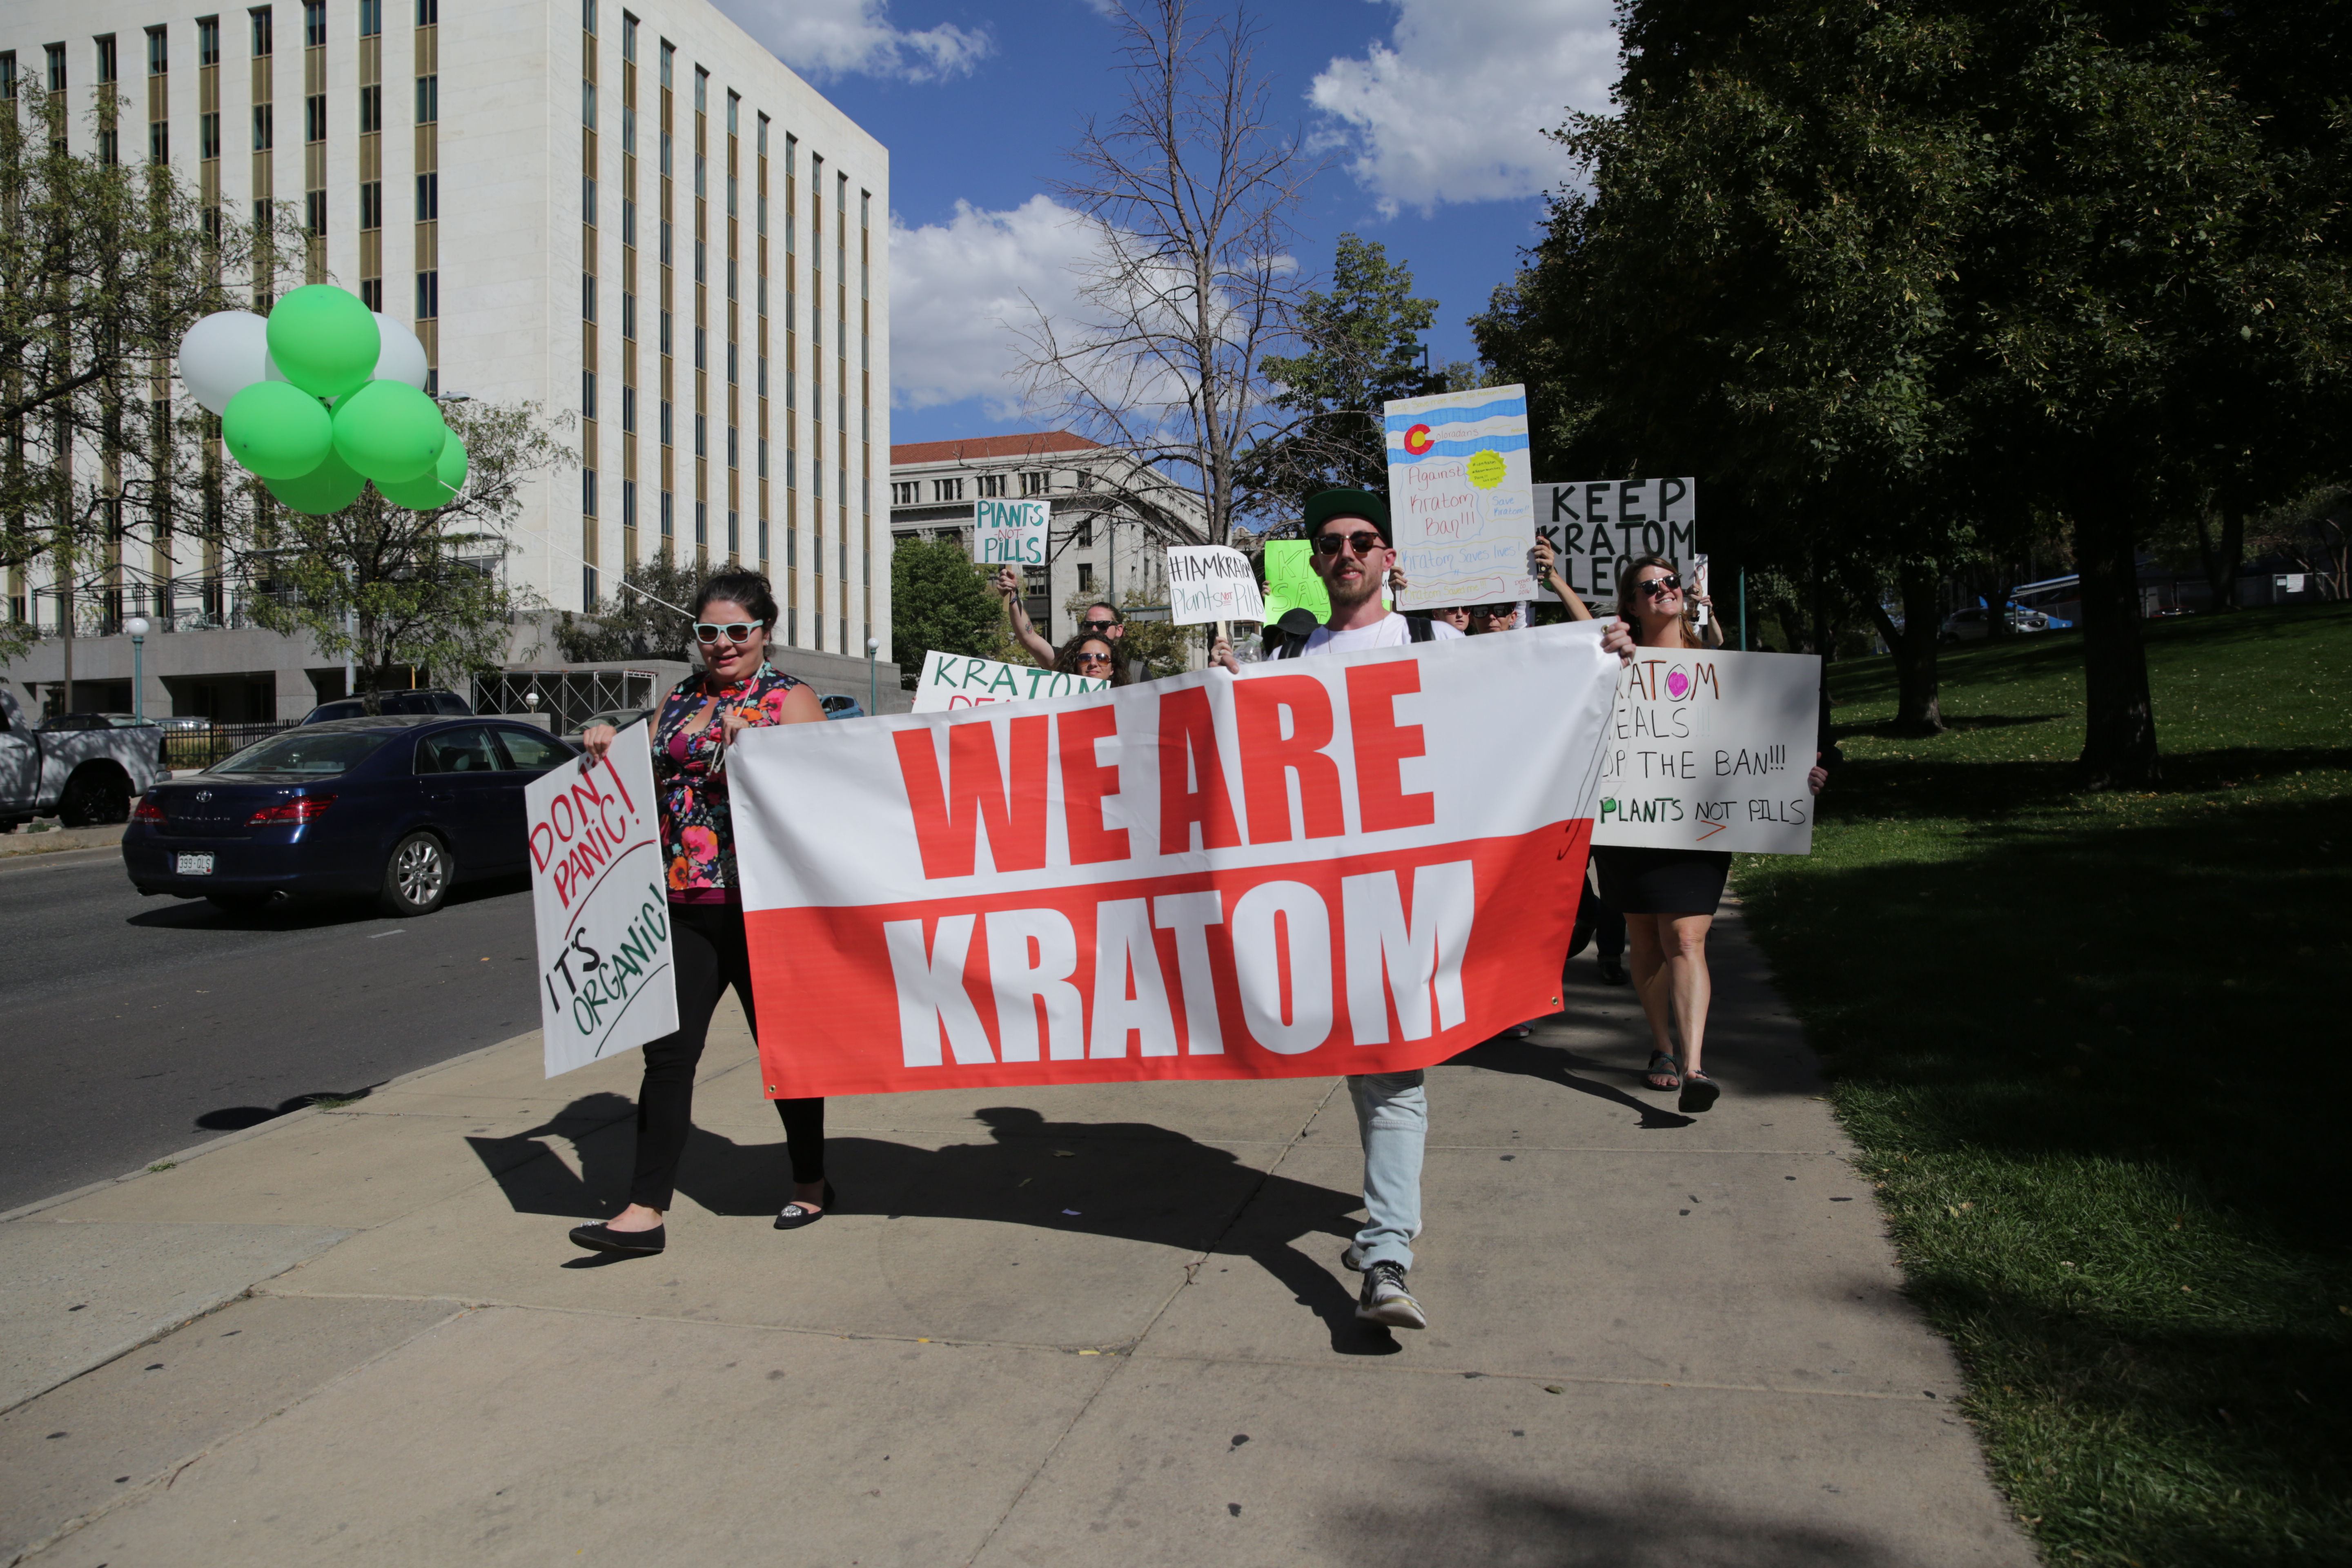 <p>Jeremy Haley, the owner of Rocky Mountain Kratom, marches with supporters at the Denver capital. </p>